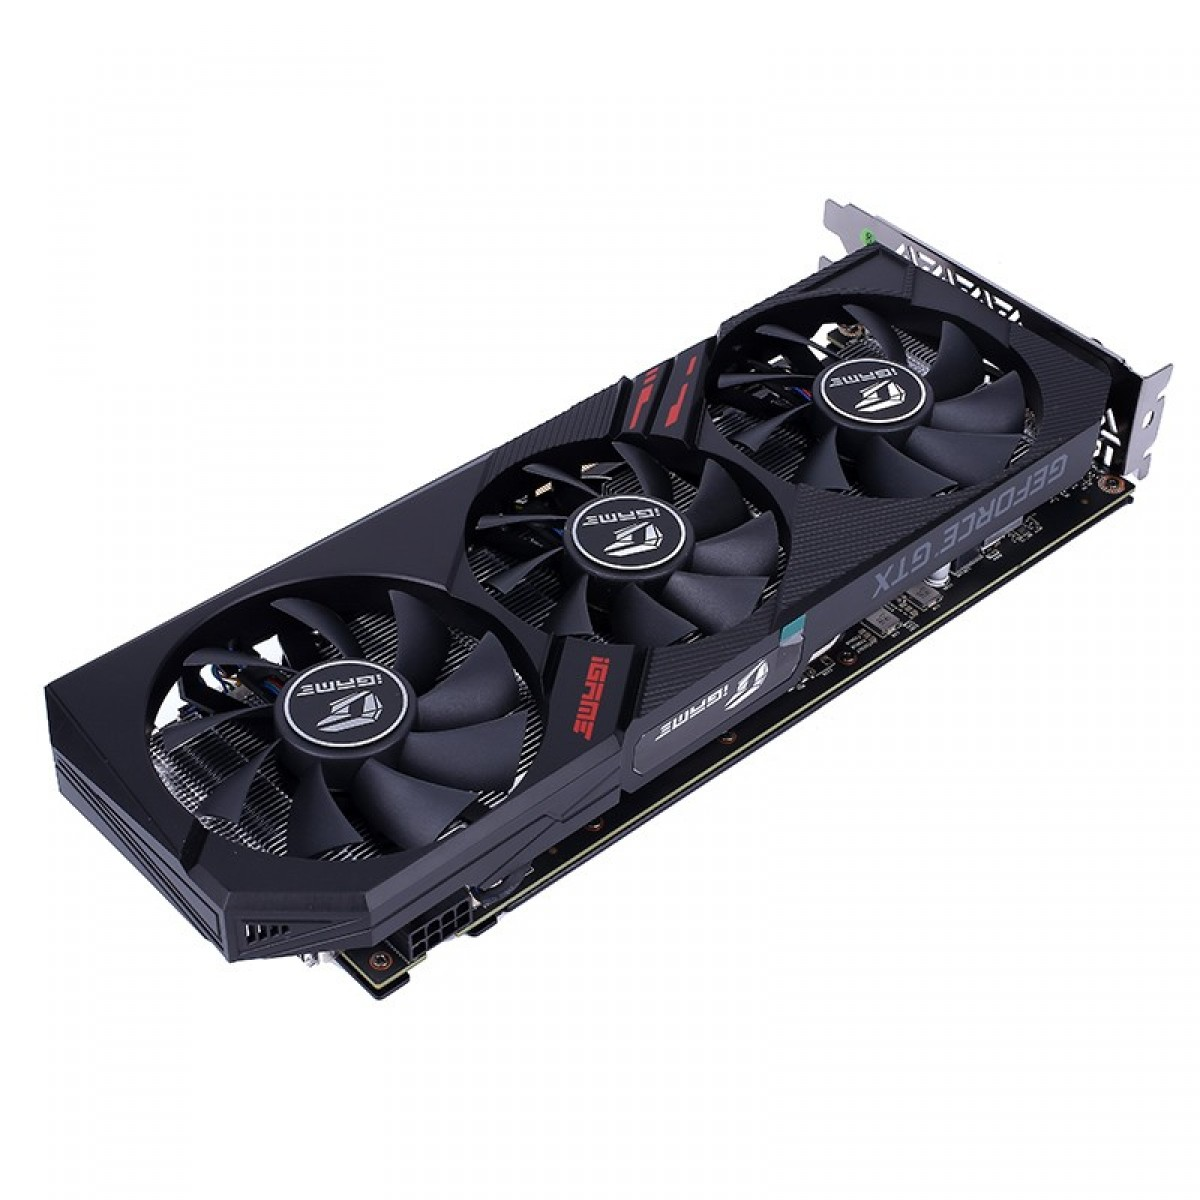 Placa de Vídeo Colorful iGame GeForce GTX 1660 SUPER Ultra 6G-V, 6GB GDDR6, 192Bit